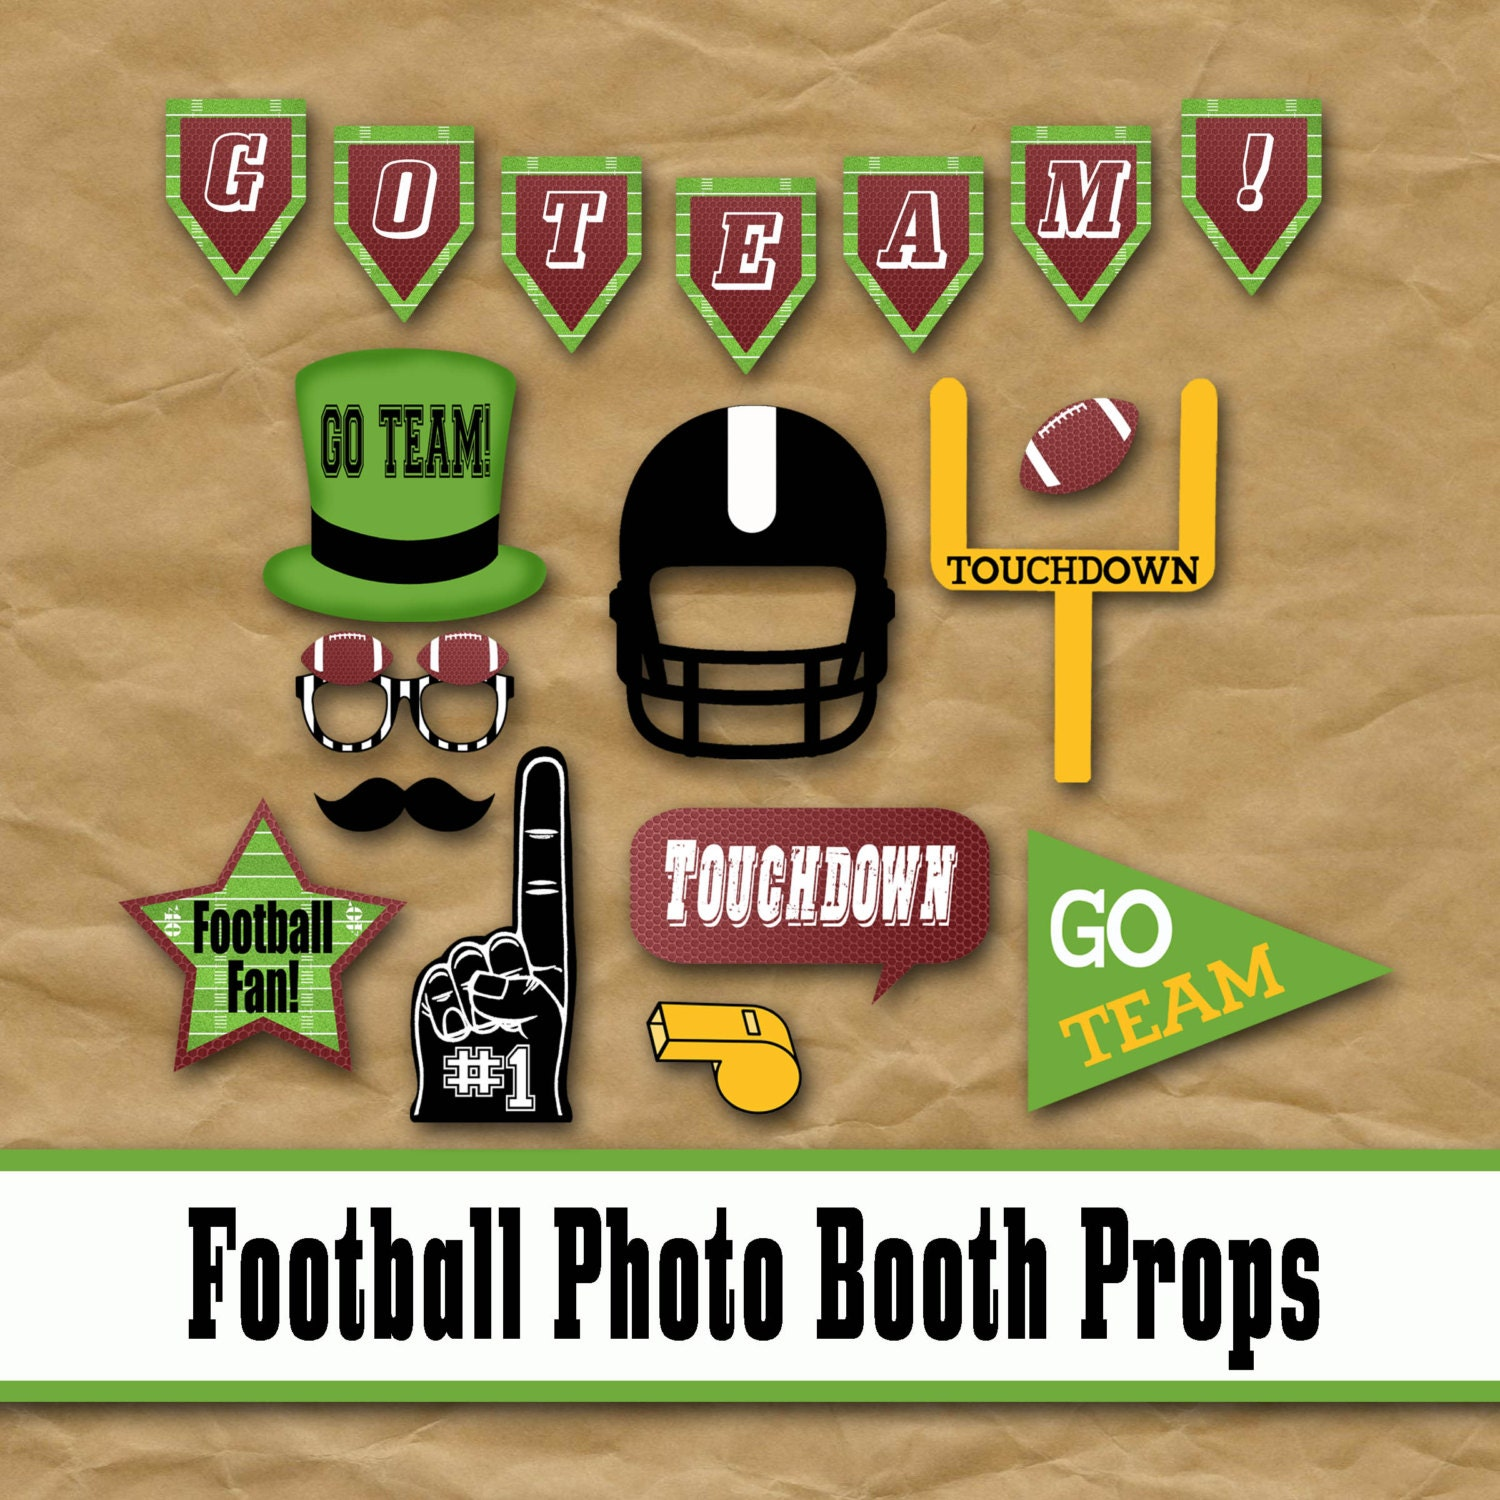 themes party boys image a popsugar decorations decor moms gallery birthday photo football